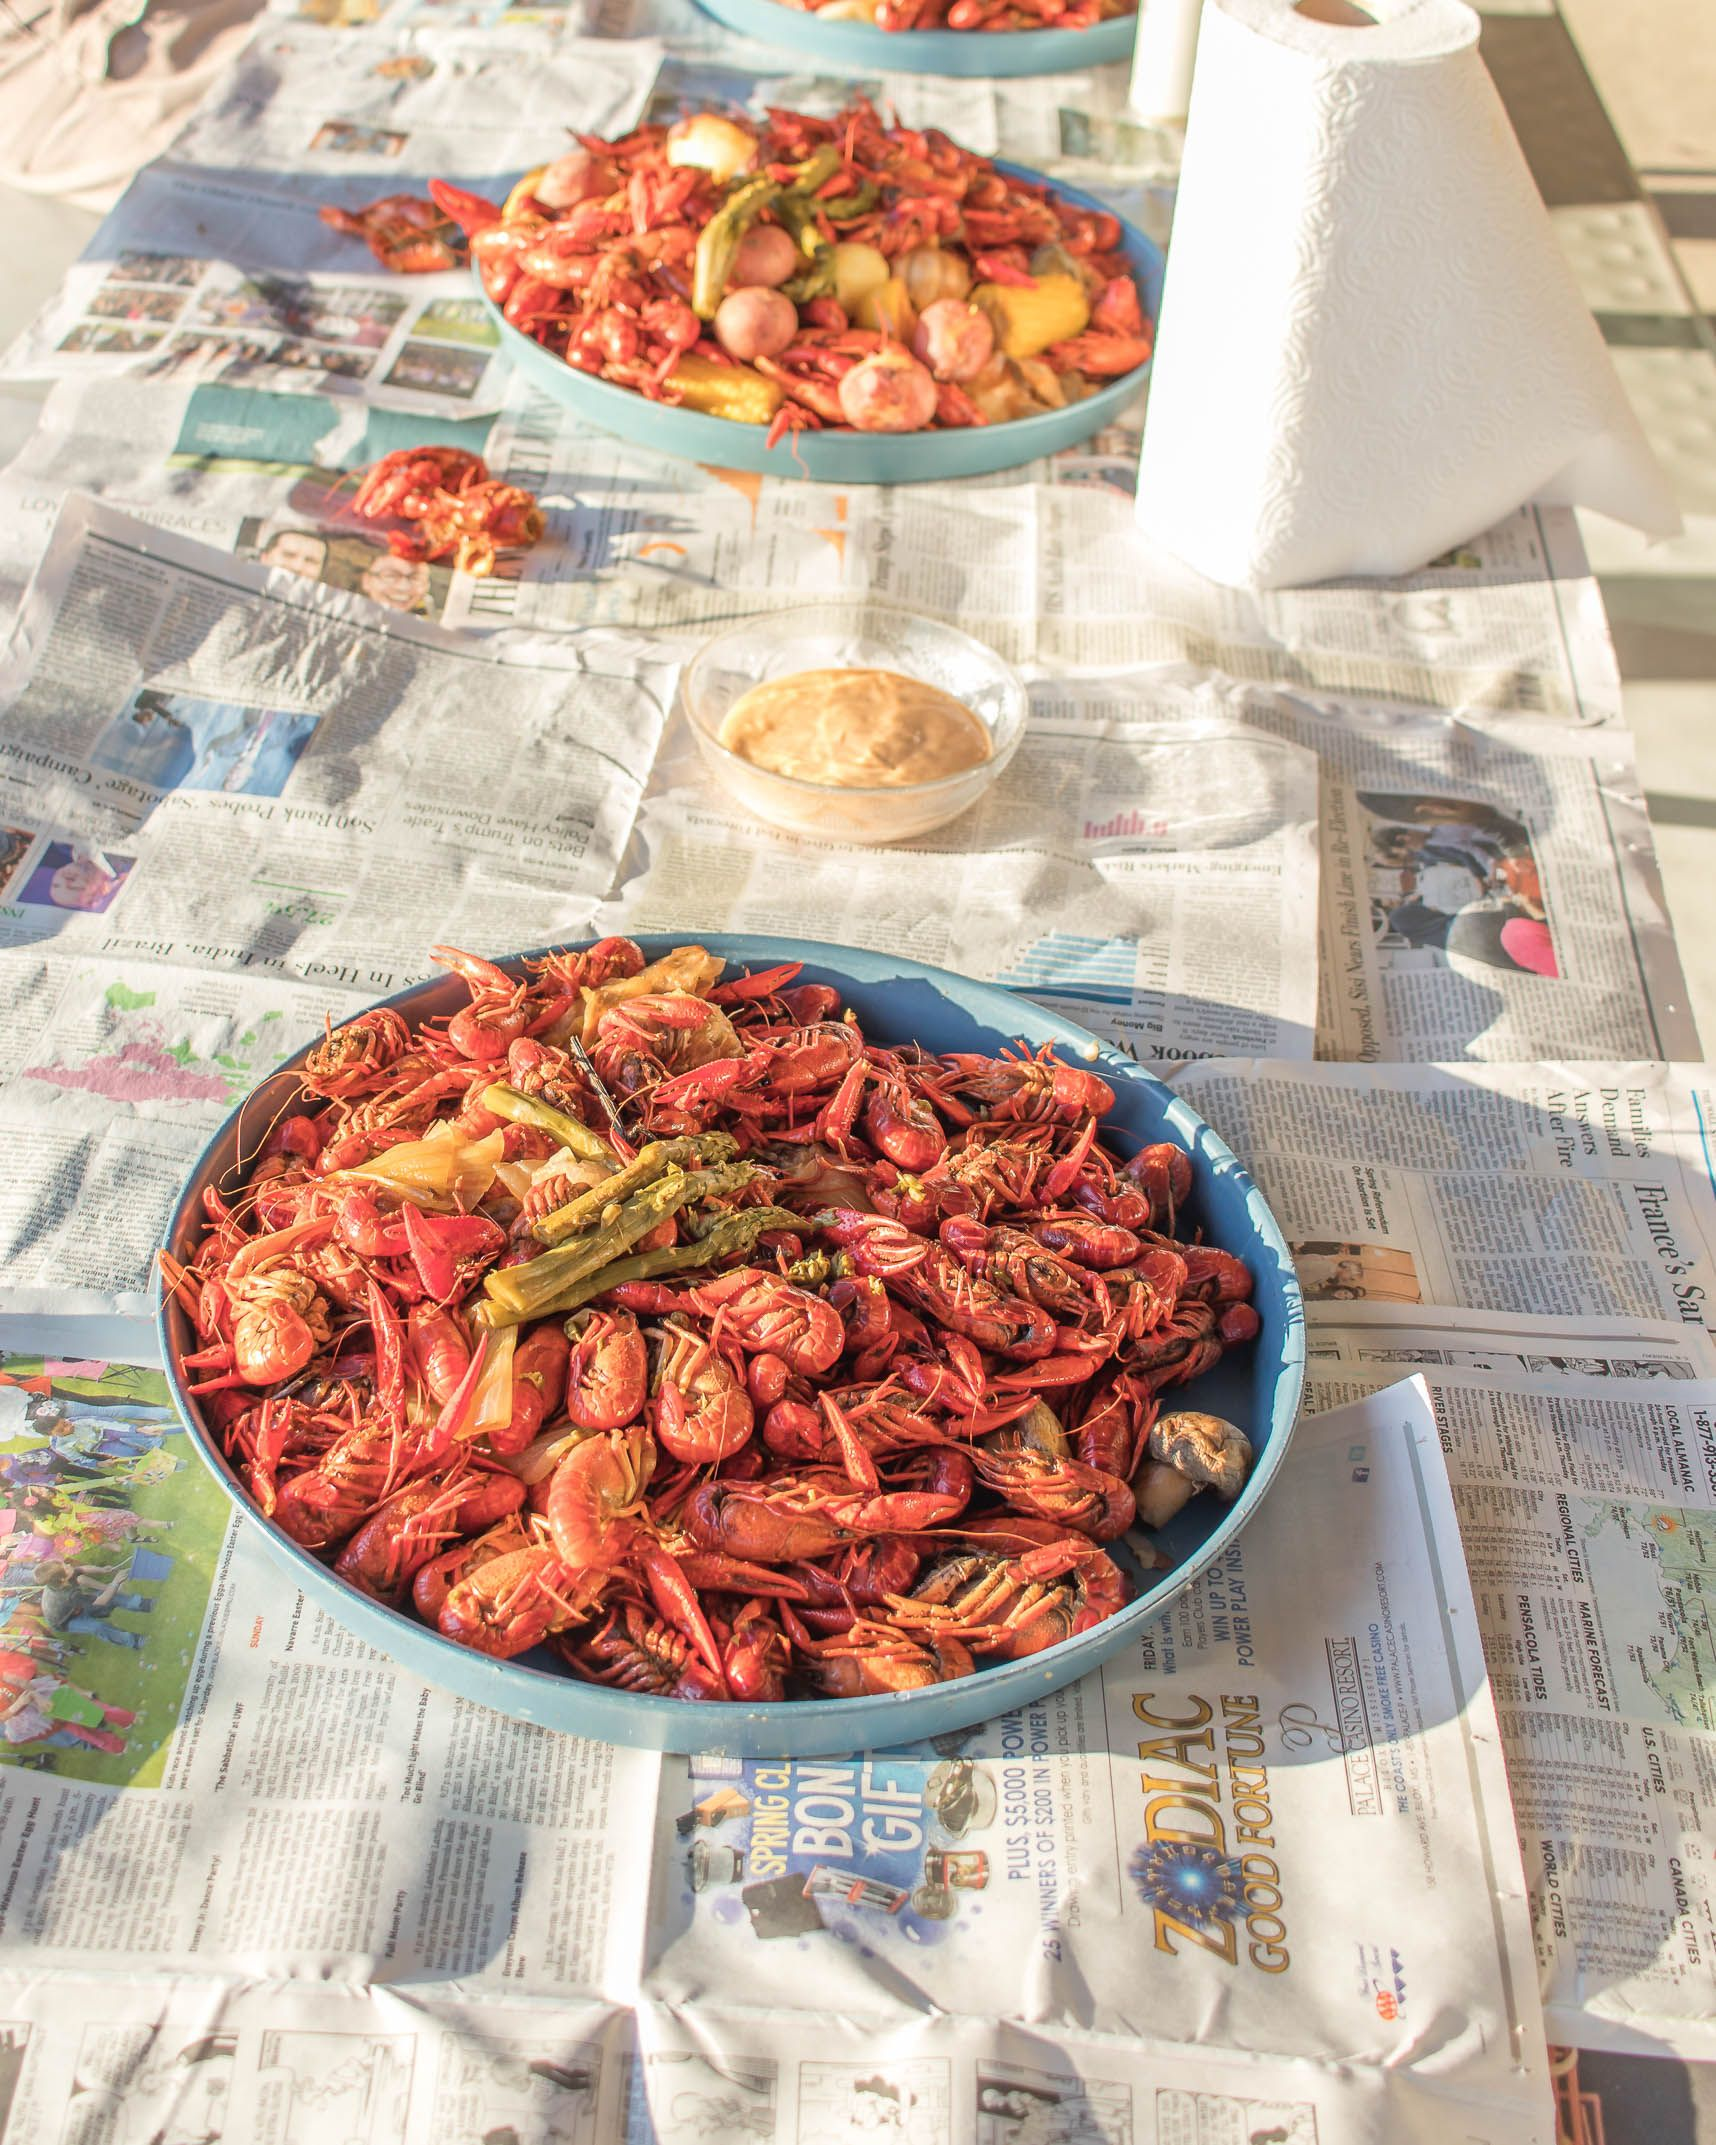 How to boil crawfish south louisiana recipe all